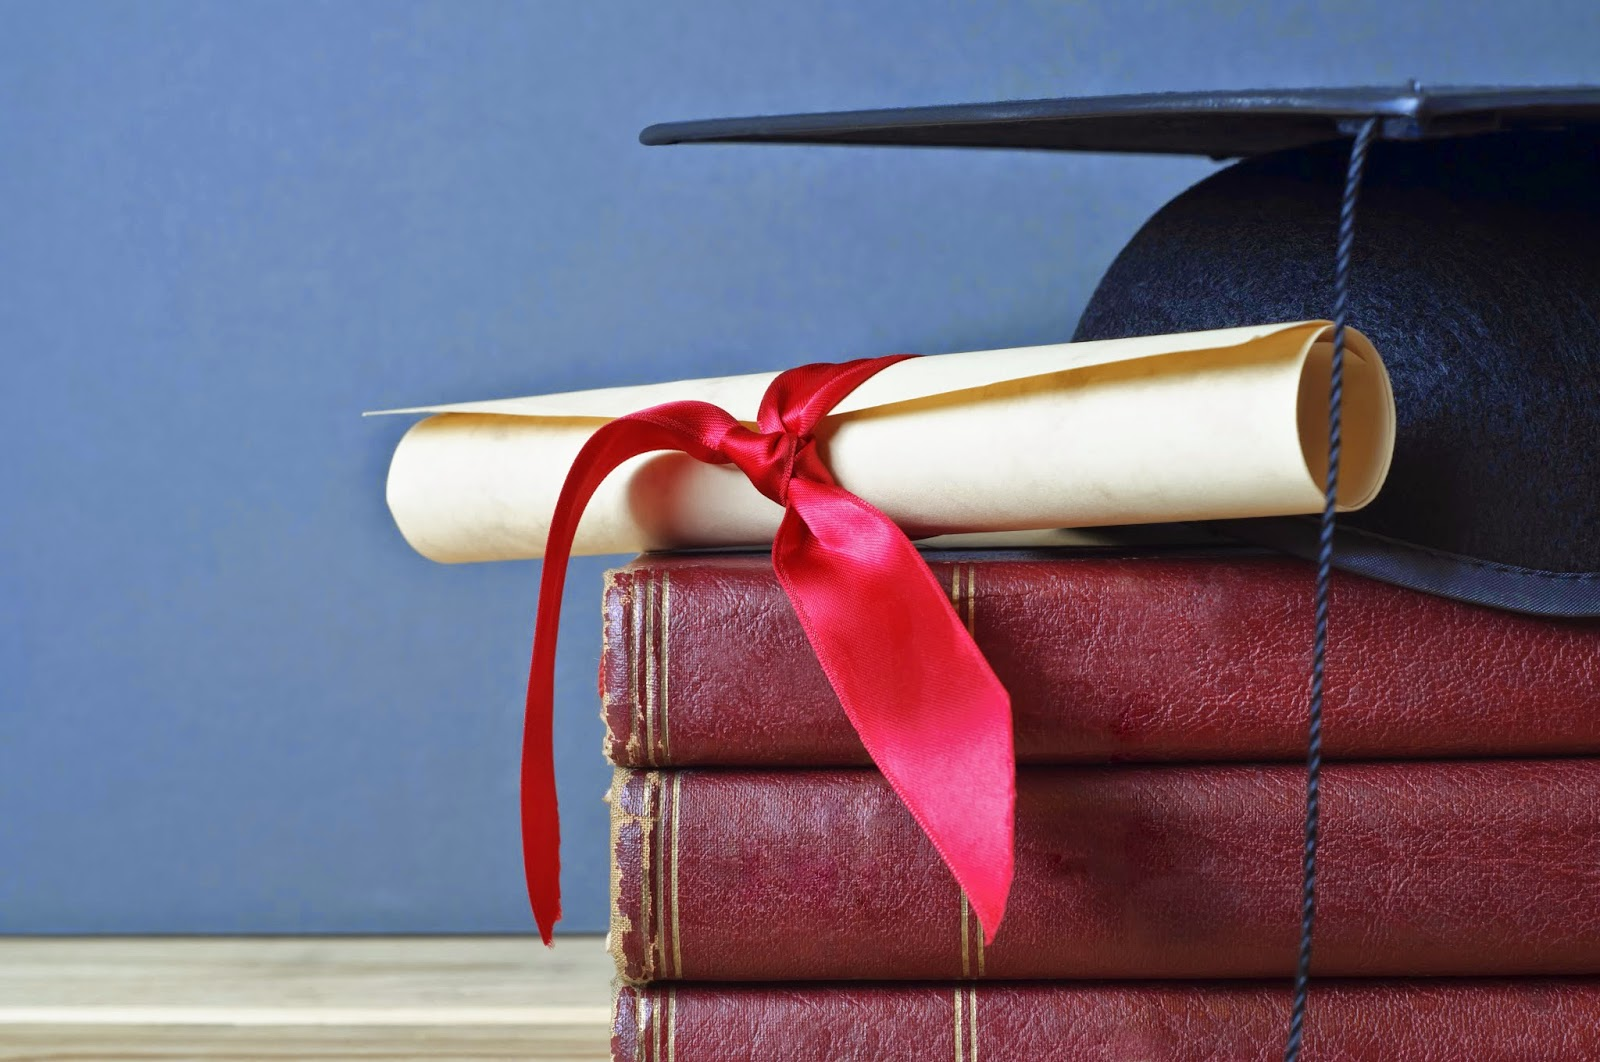 Image of graduation cap stacked on top of books next to diploma